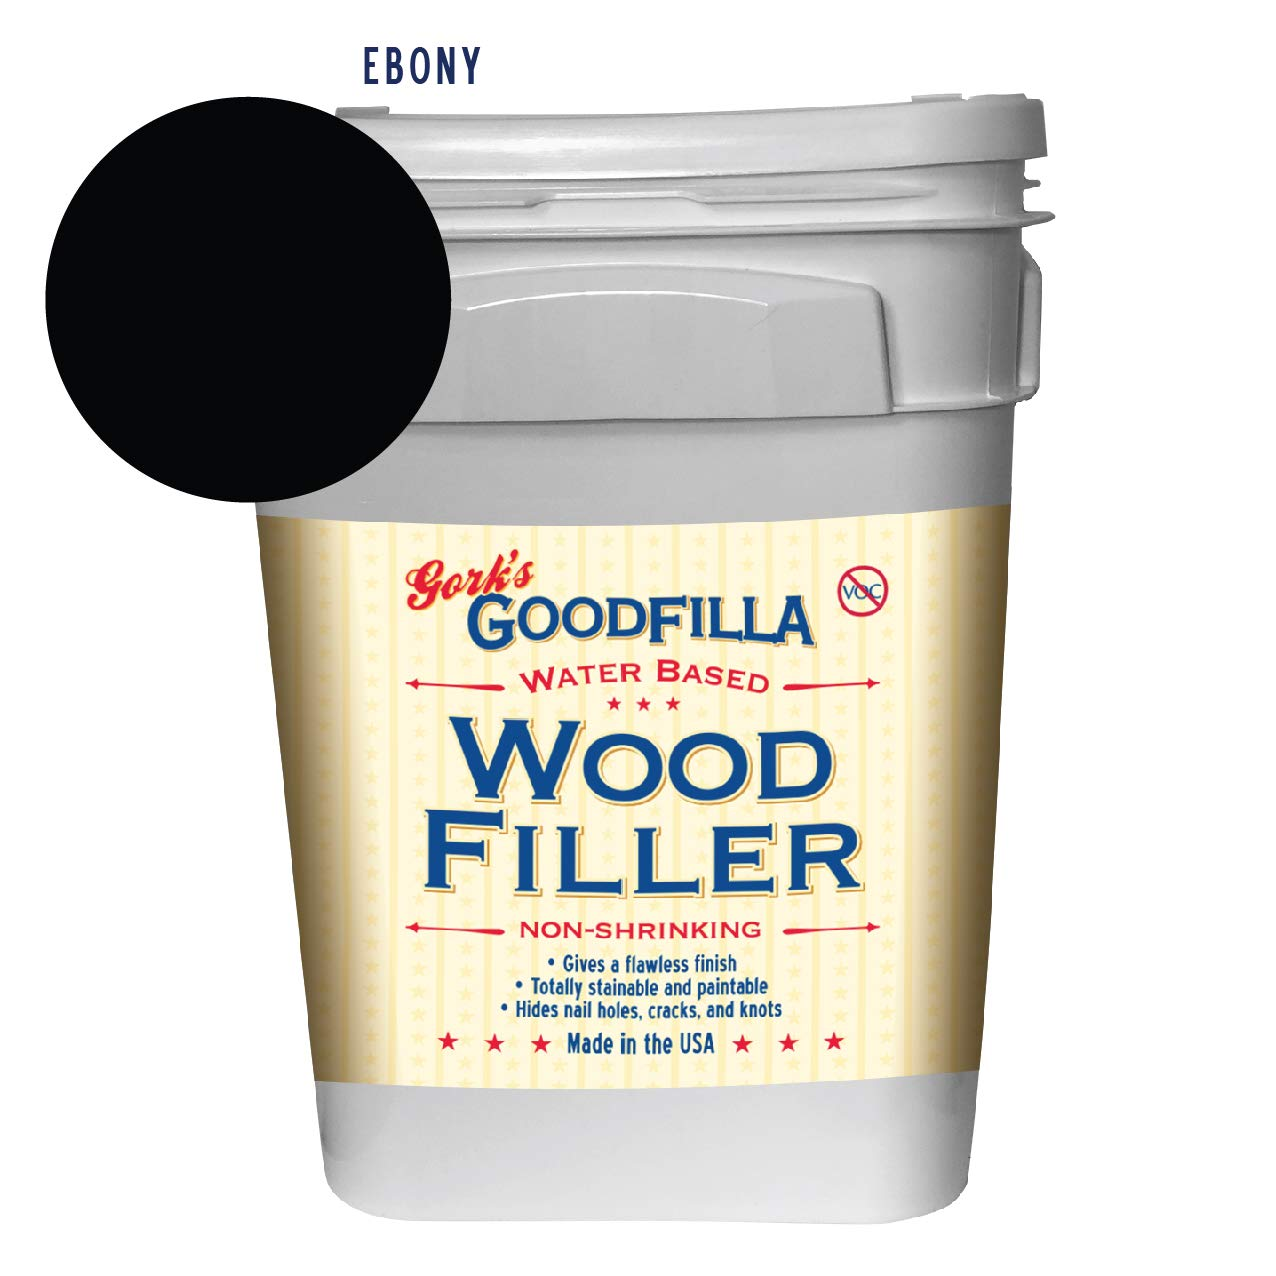 Water-Based Wood & Grain Filler - Ebony - 3.5 Gallon by Goodfilla | Replace Every Filler & Putty | Repairs, Finishes & Patches | Paintable, Stainable, Sandable & Quick Drying